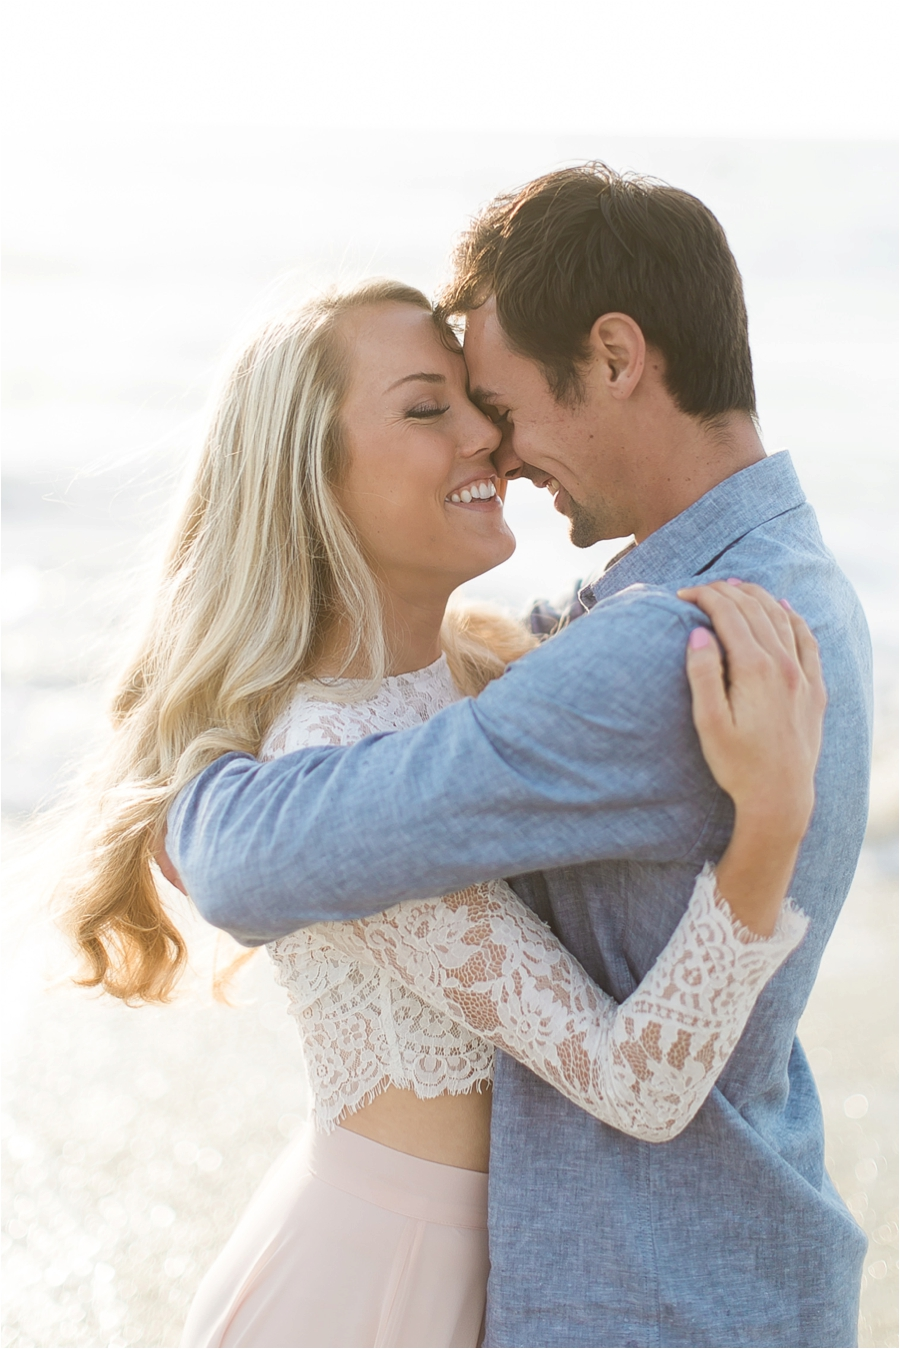 San_Diego_Wedding_Photographer_Engagement_Session_Taylor_Kinzie_Photography_0940